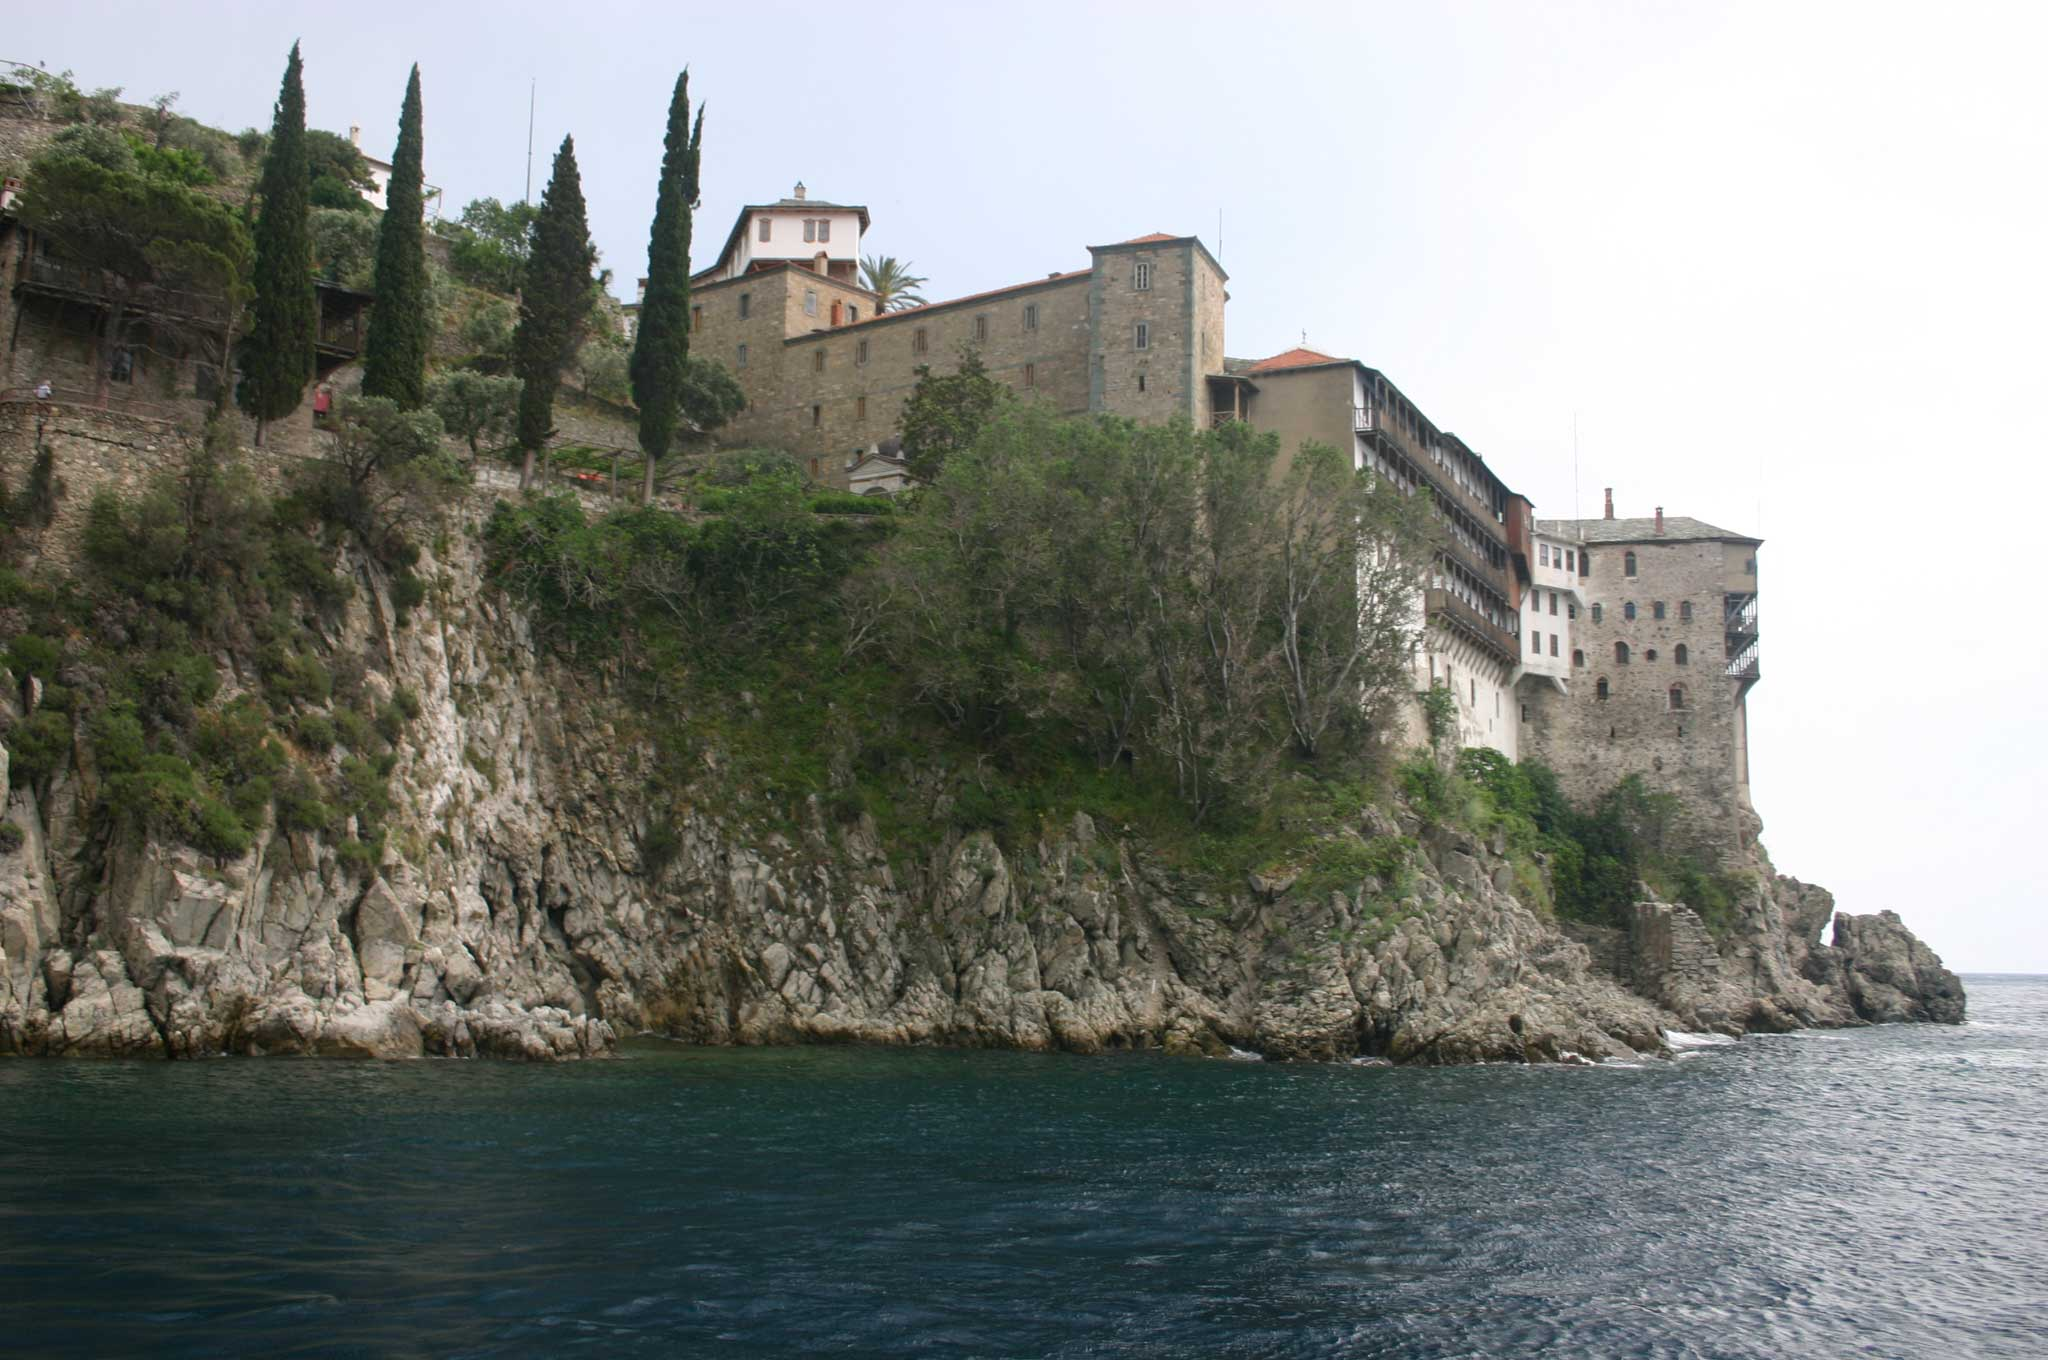 Mt Athos - Grigoriou From the Sea - © William Mackesy